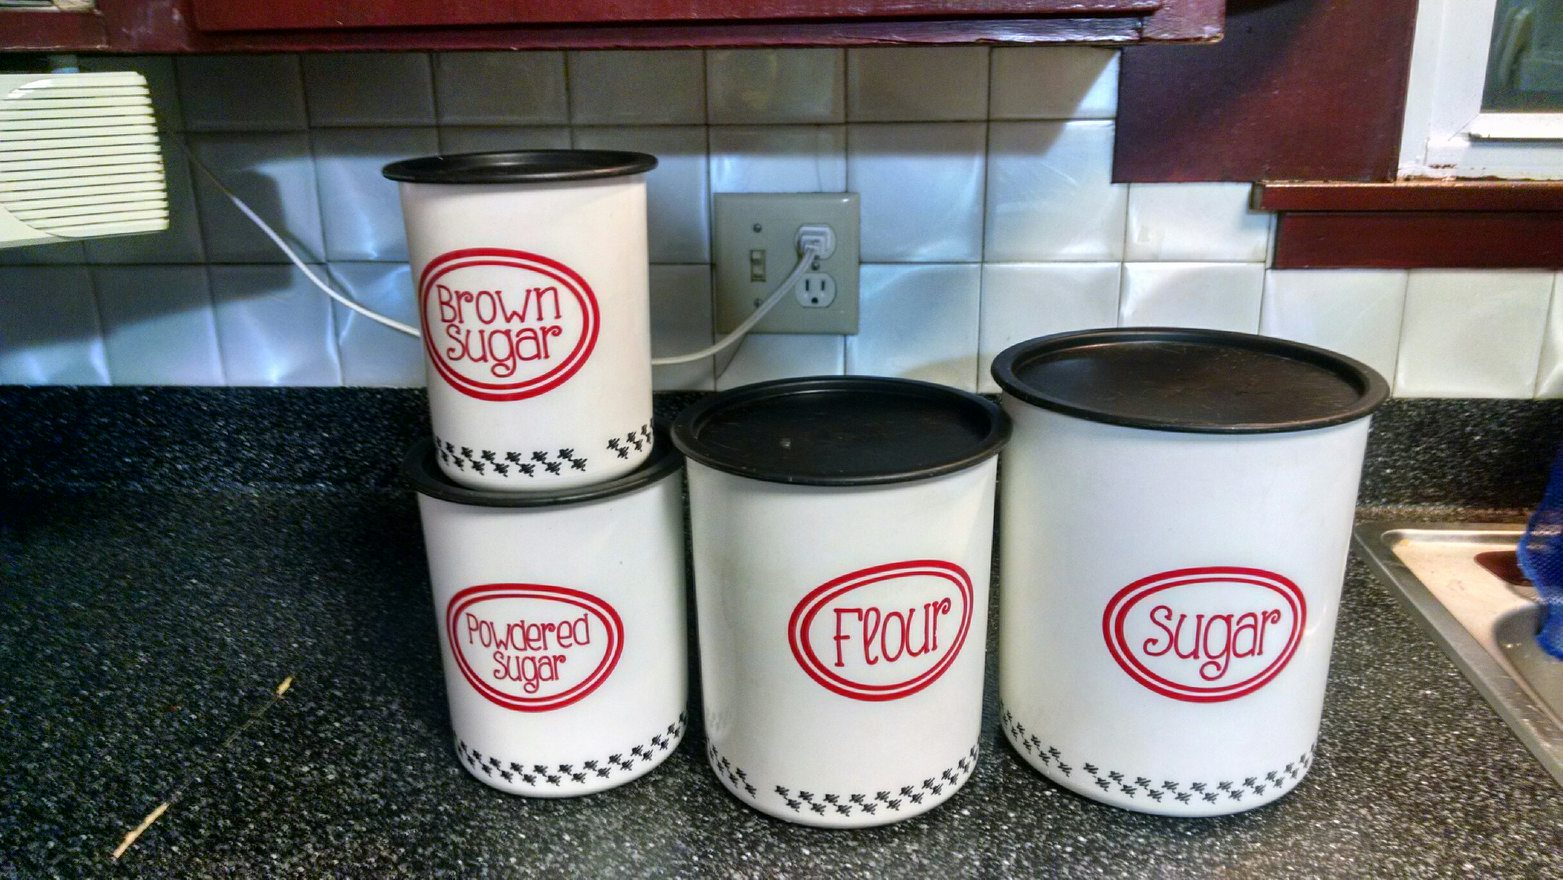 vinyl-decal-personalized-canister-labels-for-the-kitchen.jpg